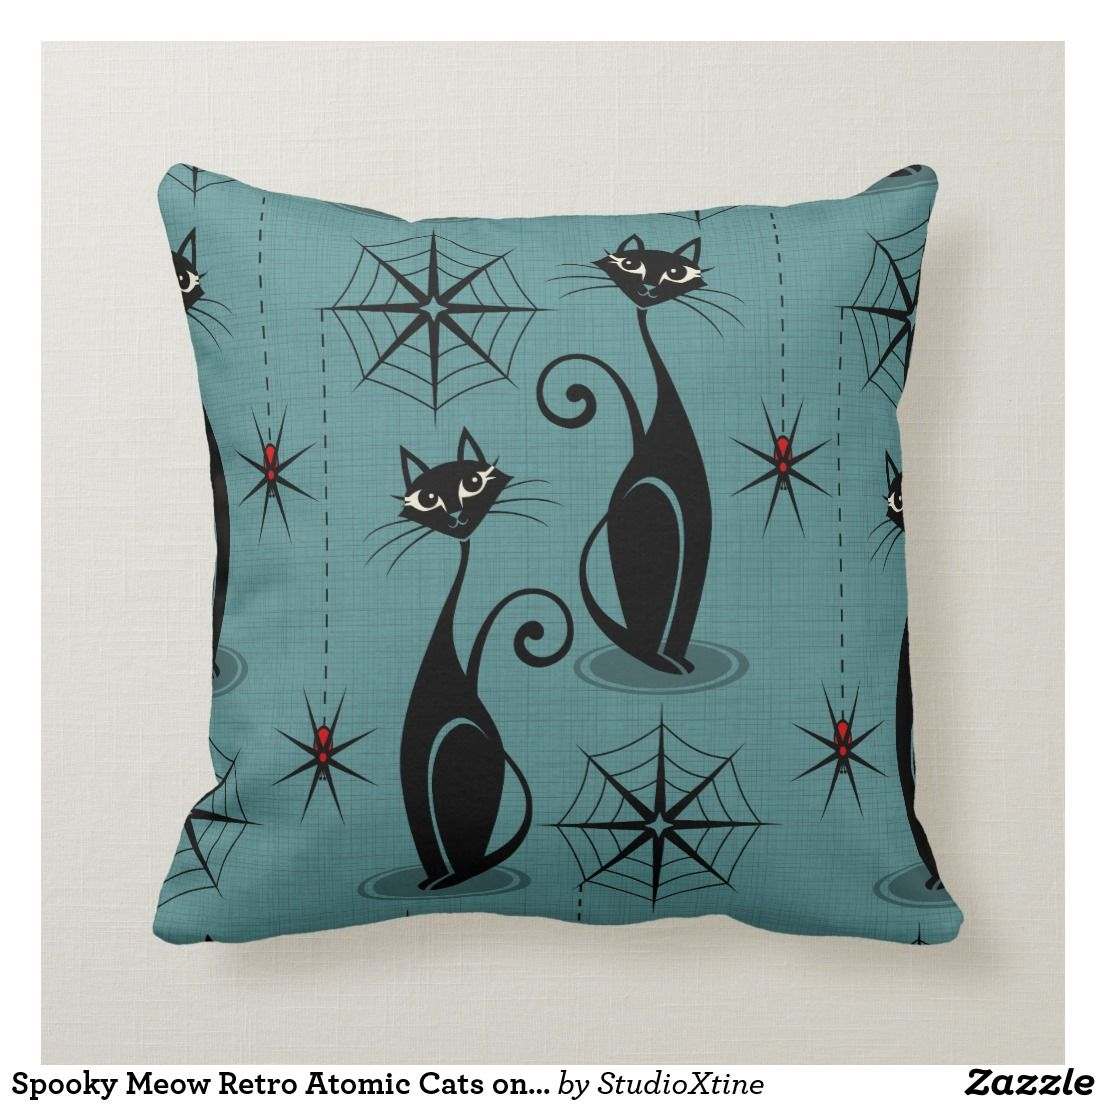 Spooky Meow Retro Atomic Cats on Blue Throw Pillow